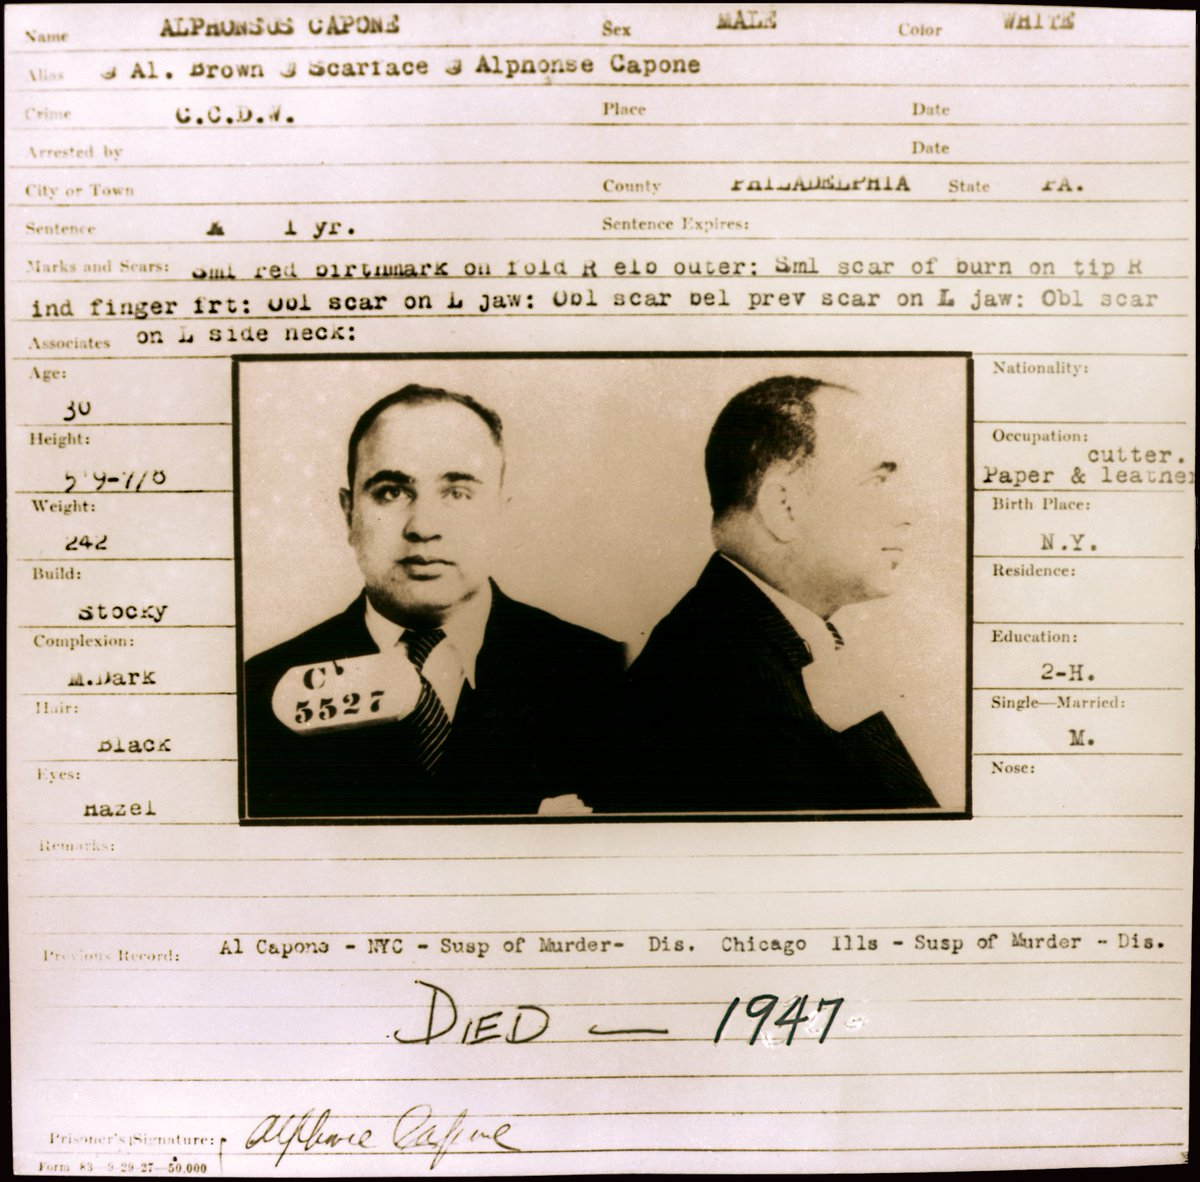 #OnThisDay in 1929: Al Capone, Inmate C-5527, arrives at Eastern State from Holmesburg Prison in northeast Philly. https://t.co/2OfKoxOYRX